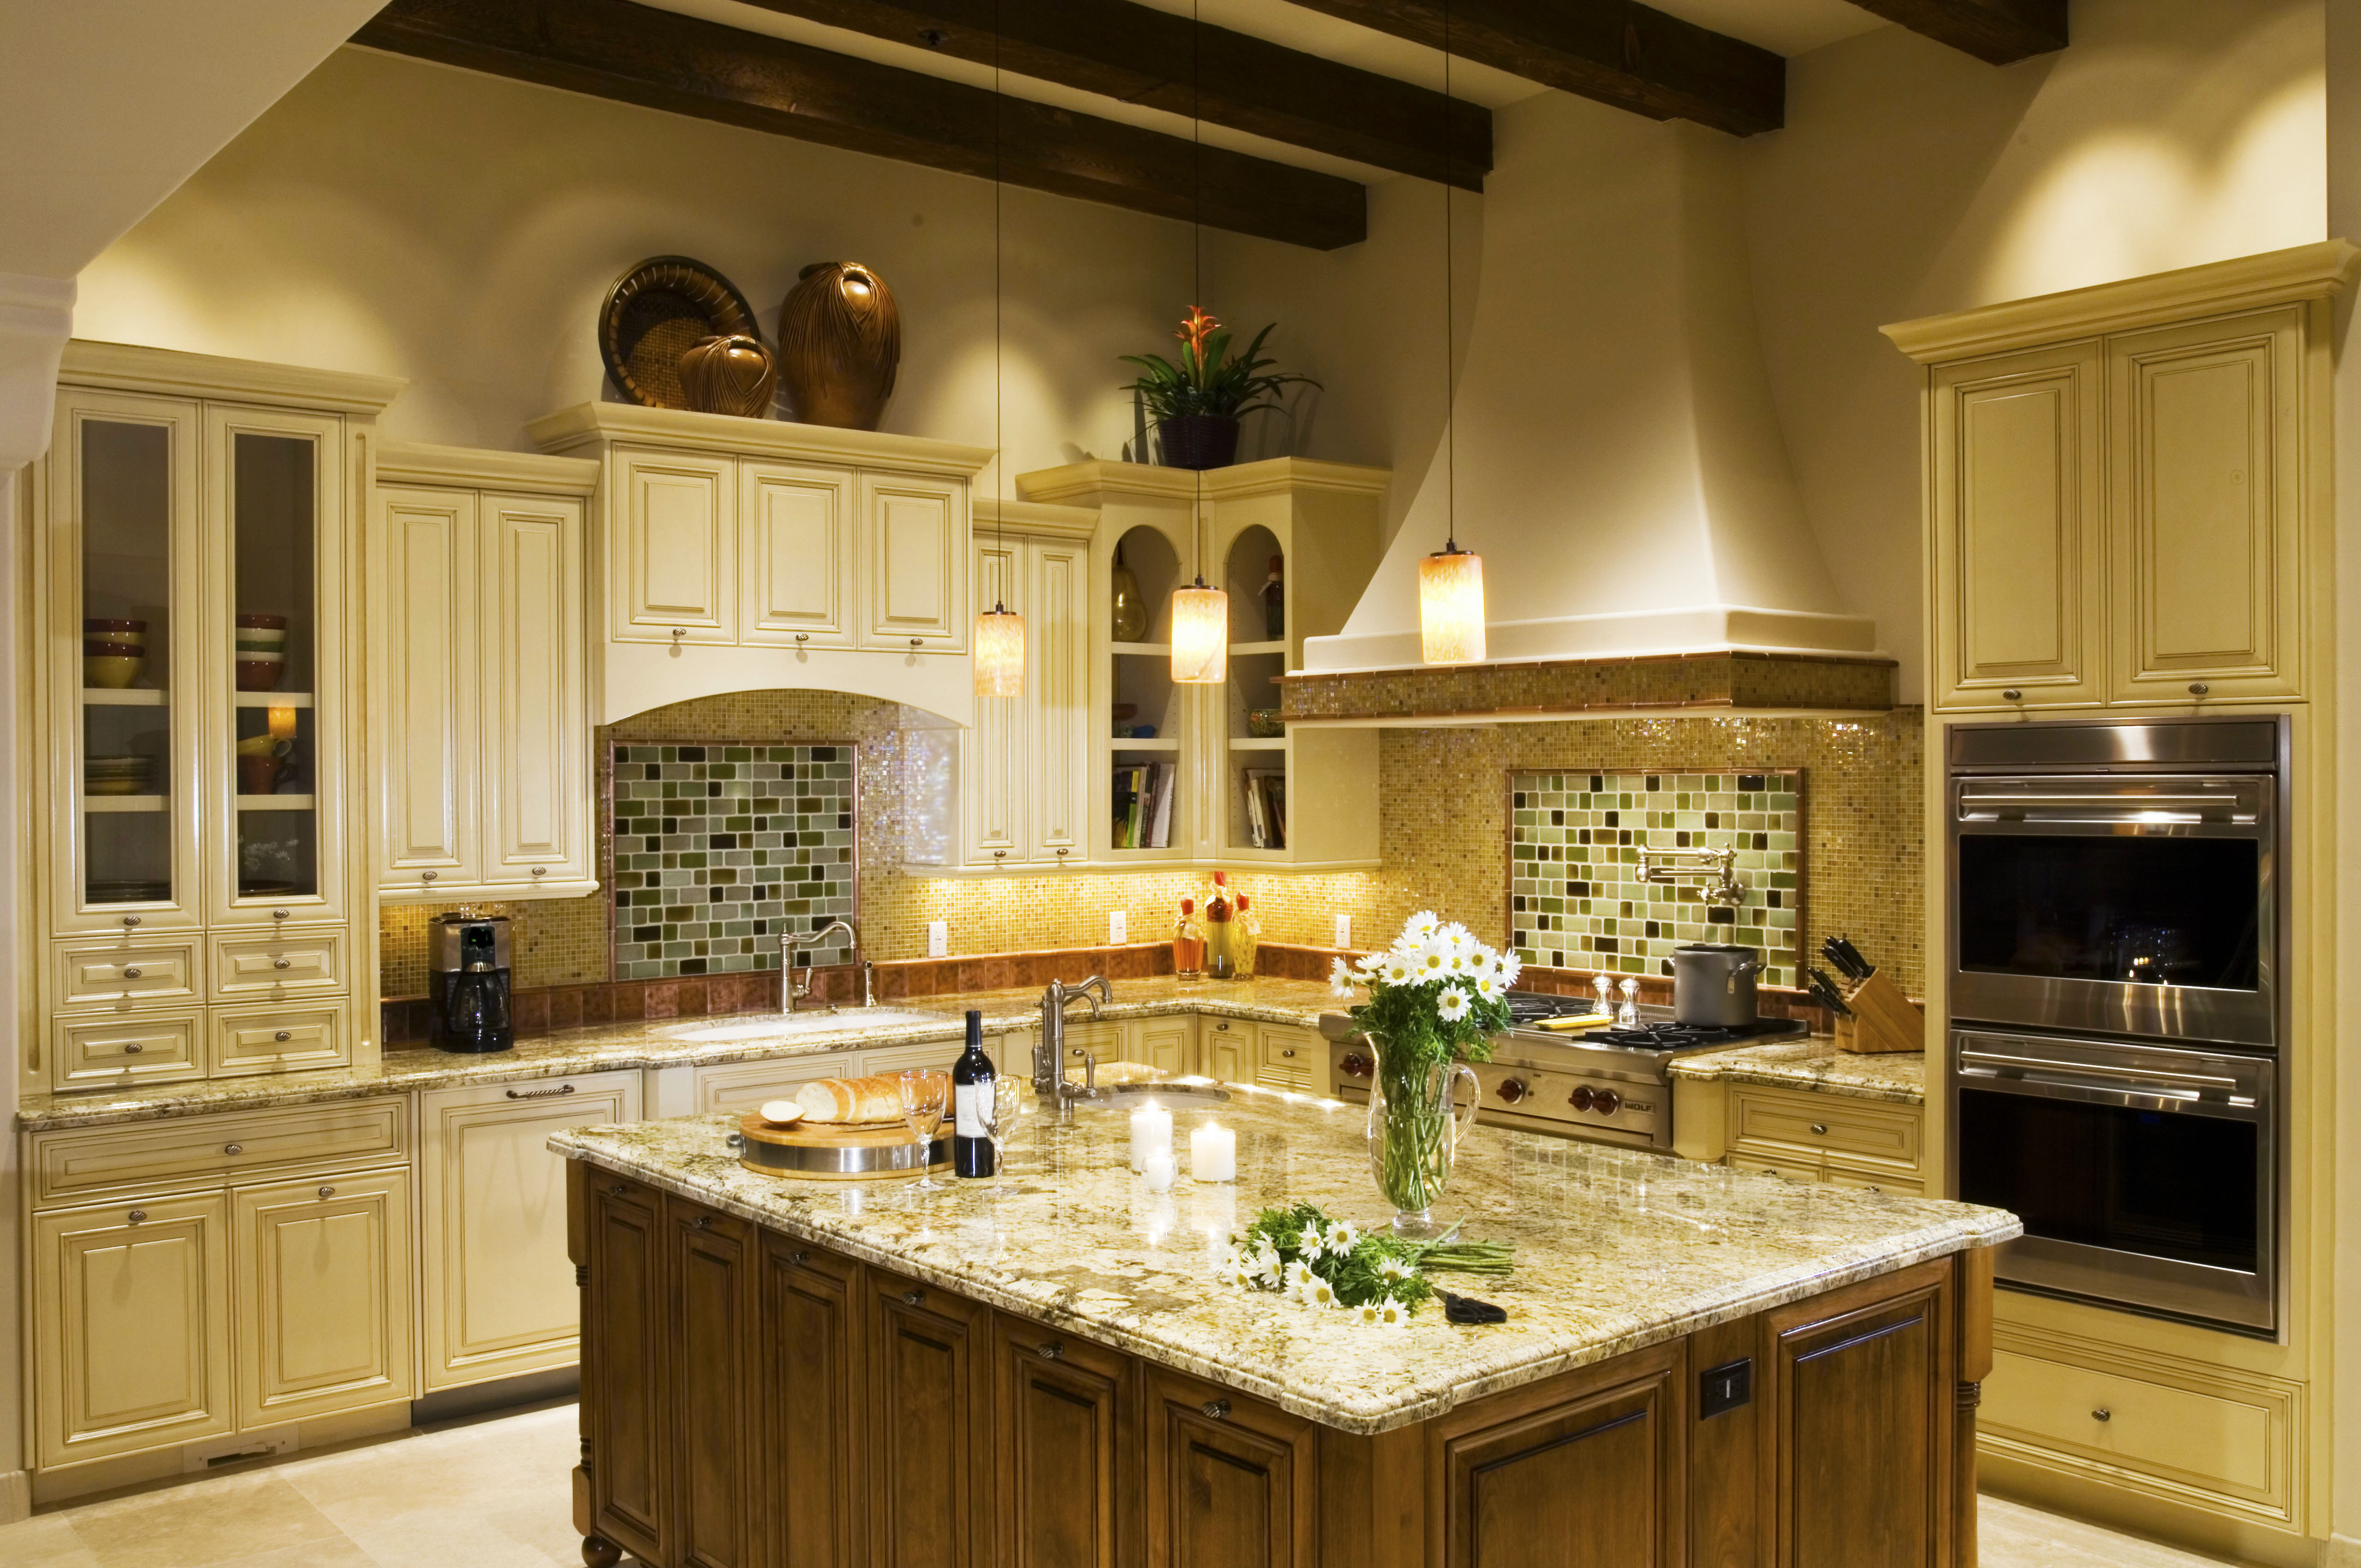 Cost to remodel kitchen backsplash designs roy home design for Remodeling your kitchen